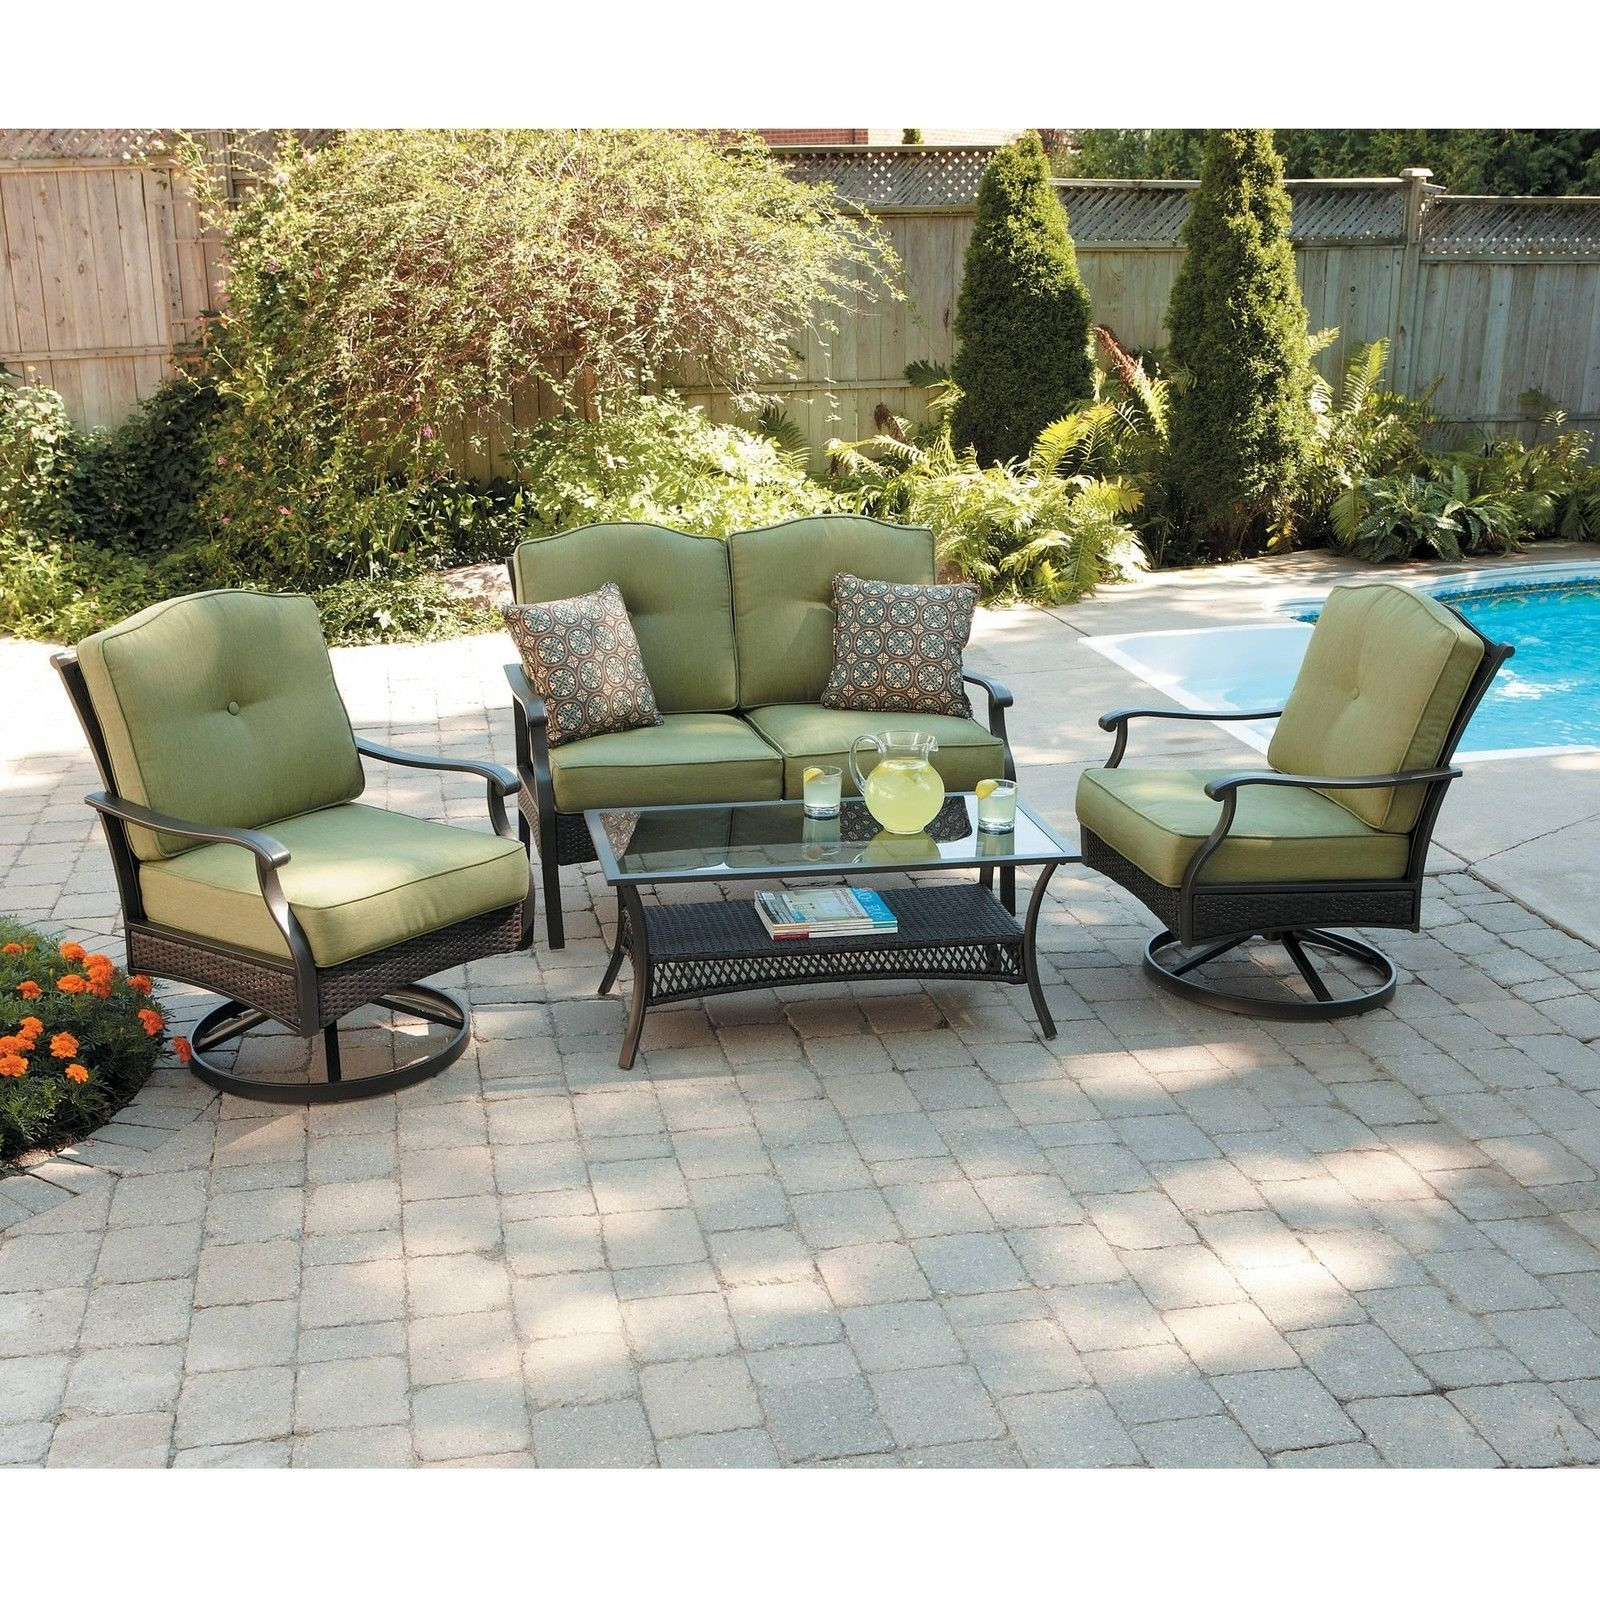 Better Homes And Gardens Providence 4 Piece Patio Conversation Set Pertaining To Well Known Ebay Patio Conversation Sets (View 6 of 15)